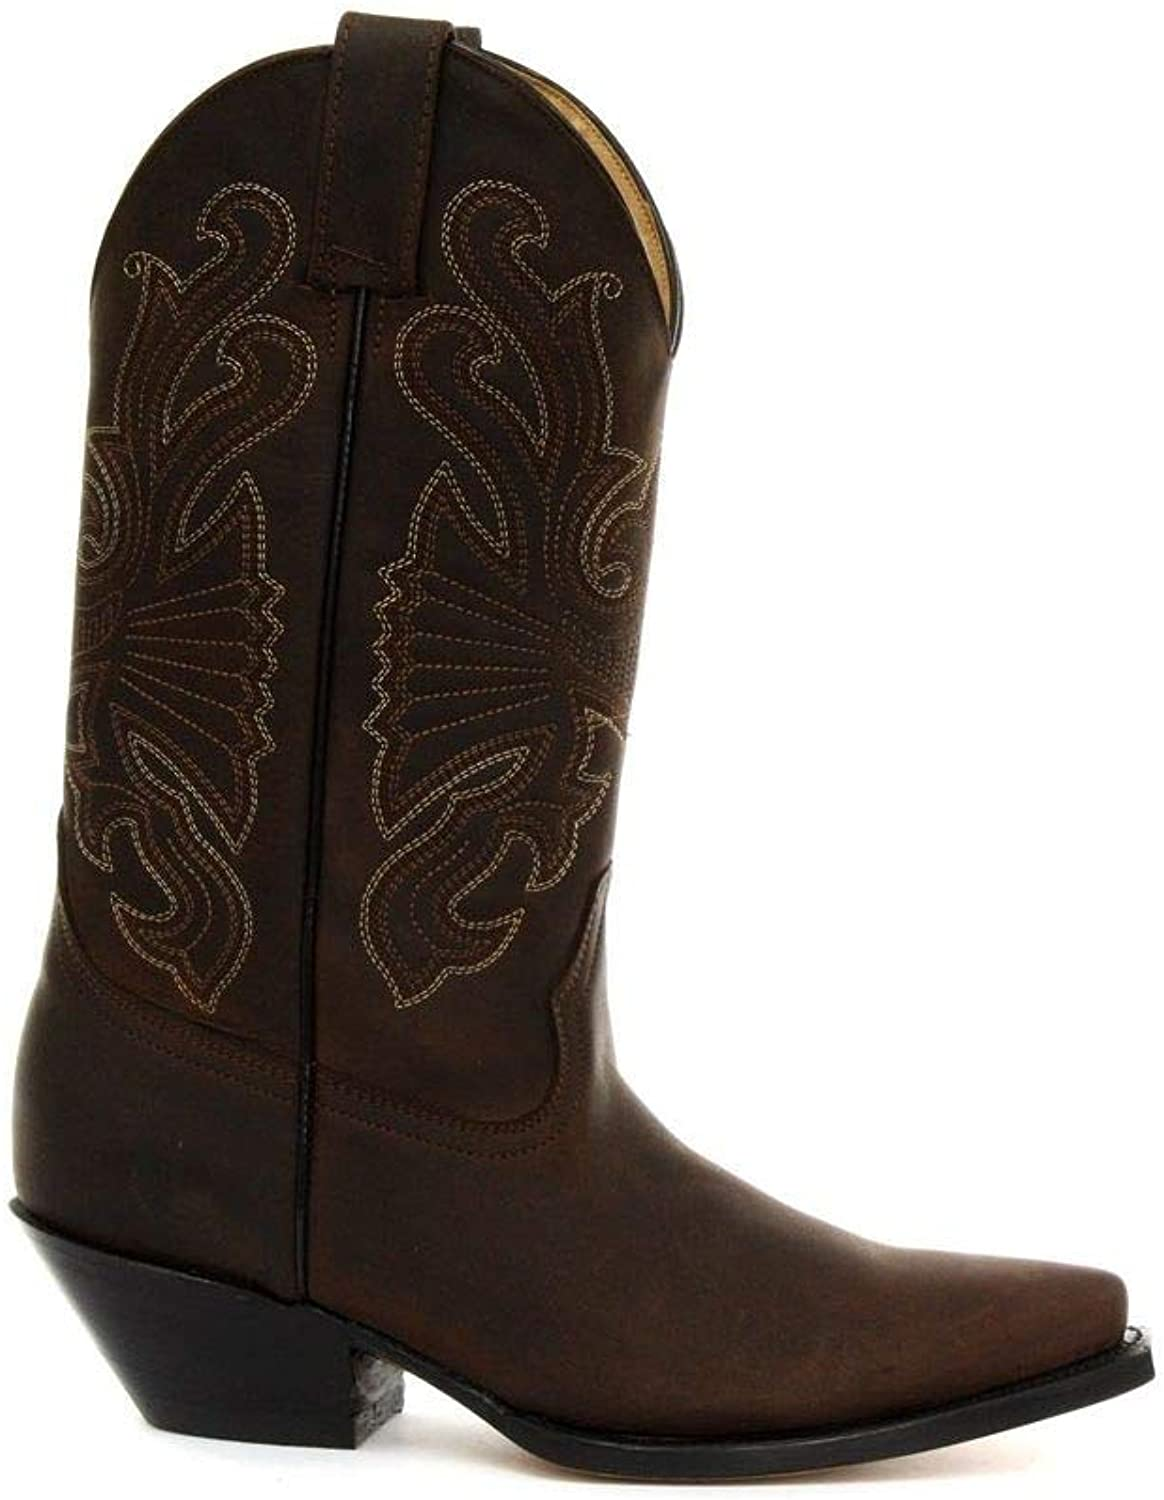 Grinders Buffalo Brown Mens Ladies Cowboy Western Slip On Pointed Leather Boots